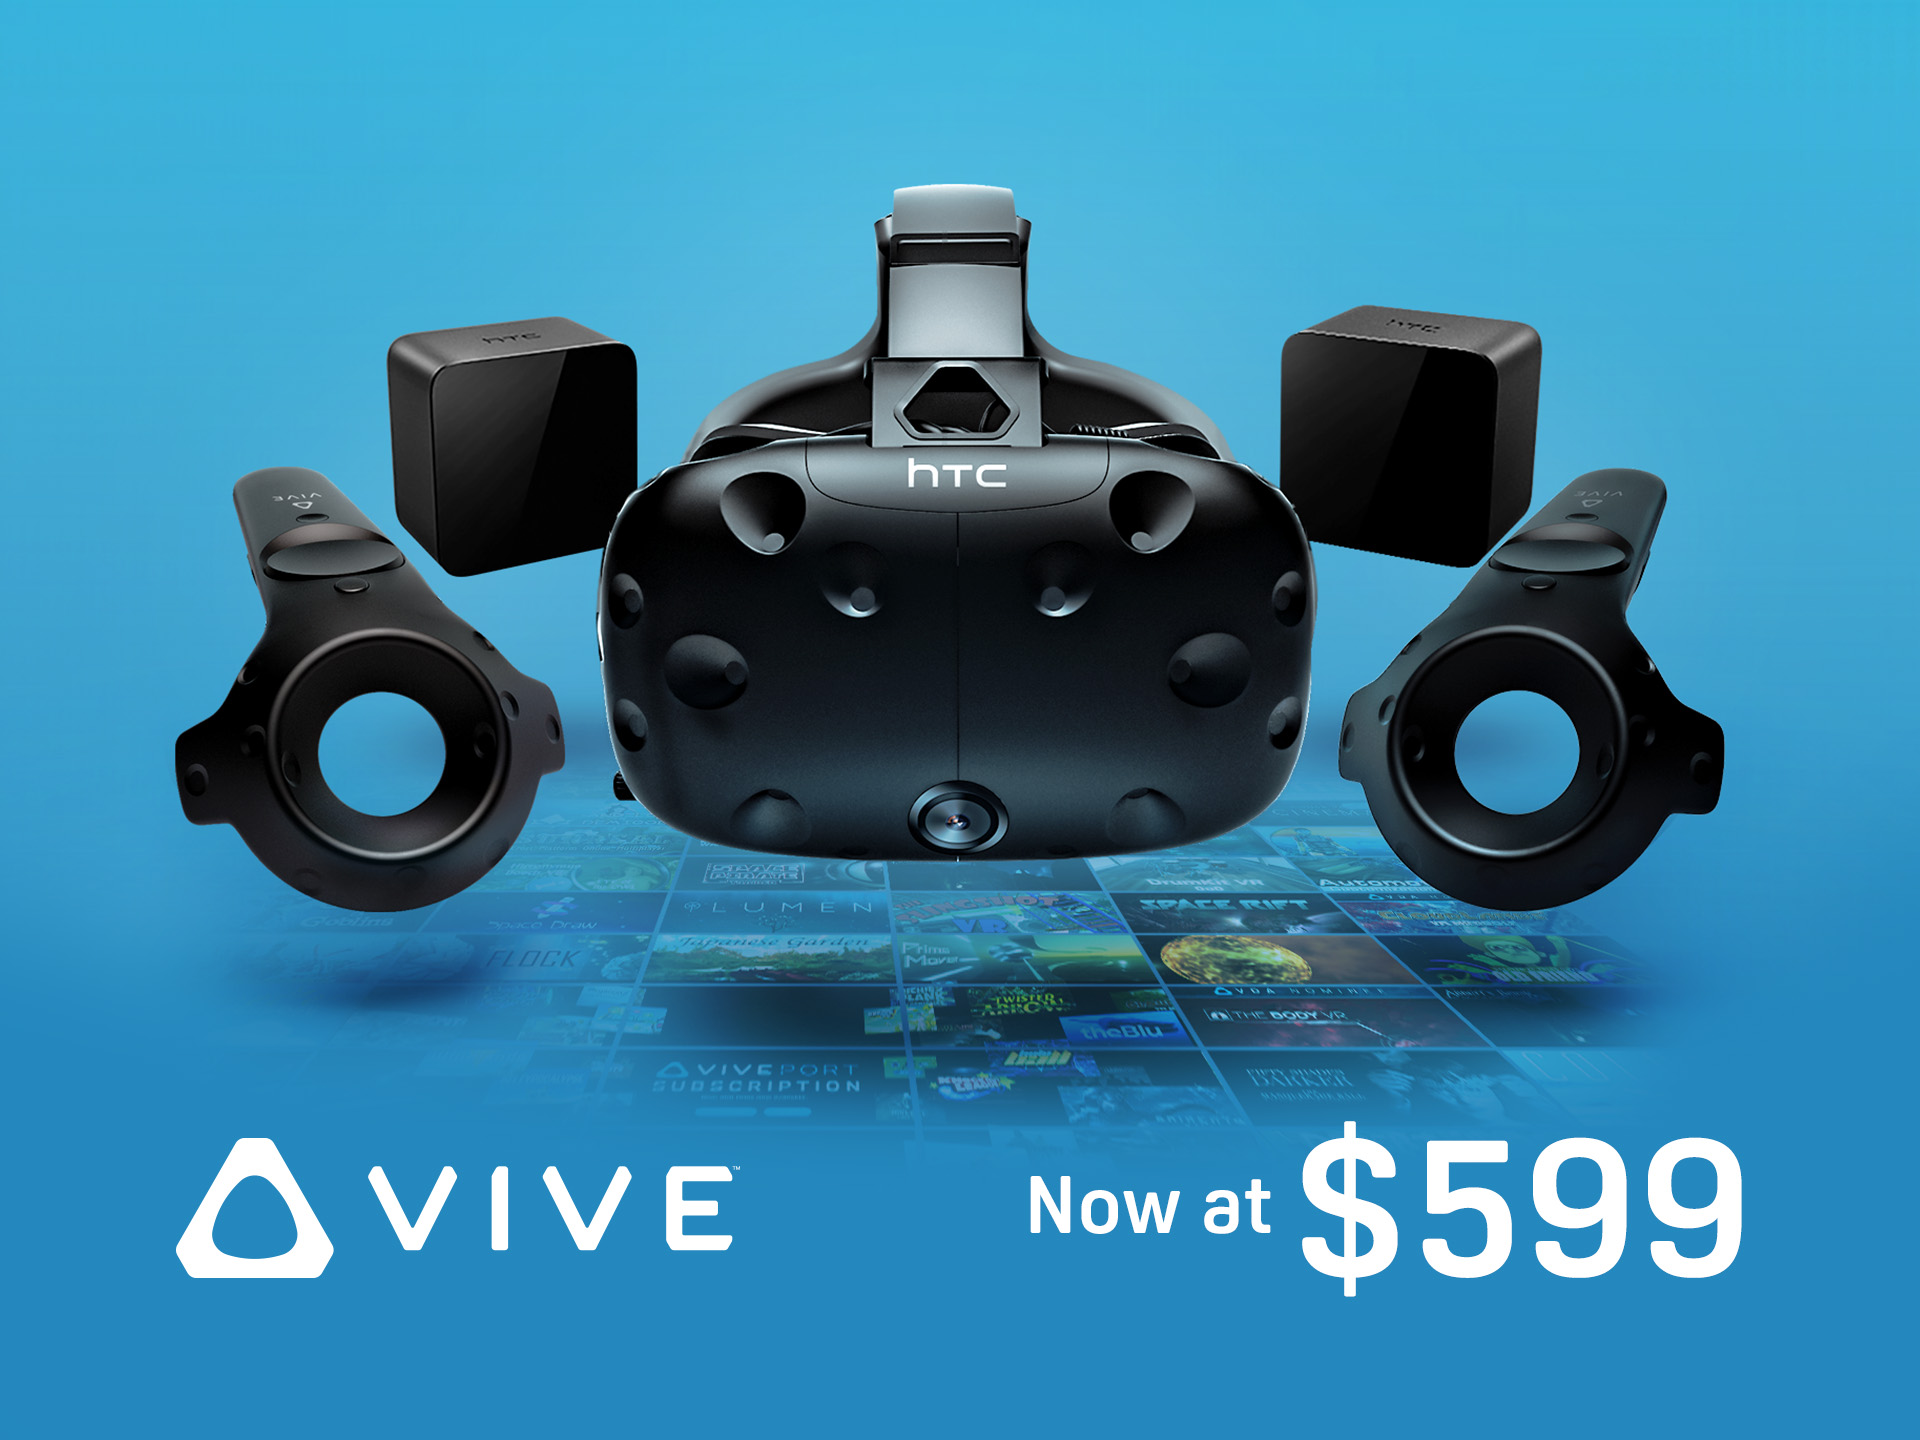 HTC Vive down to £599 after big price drop